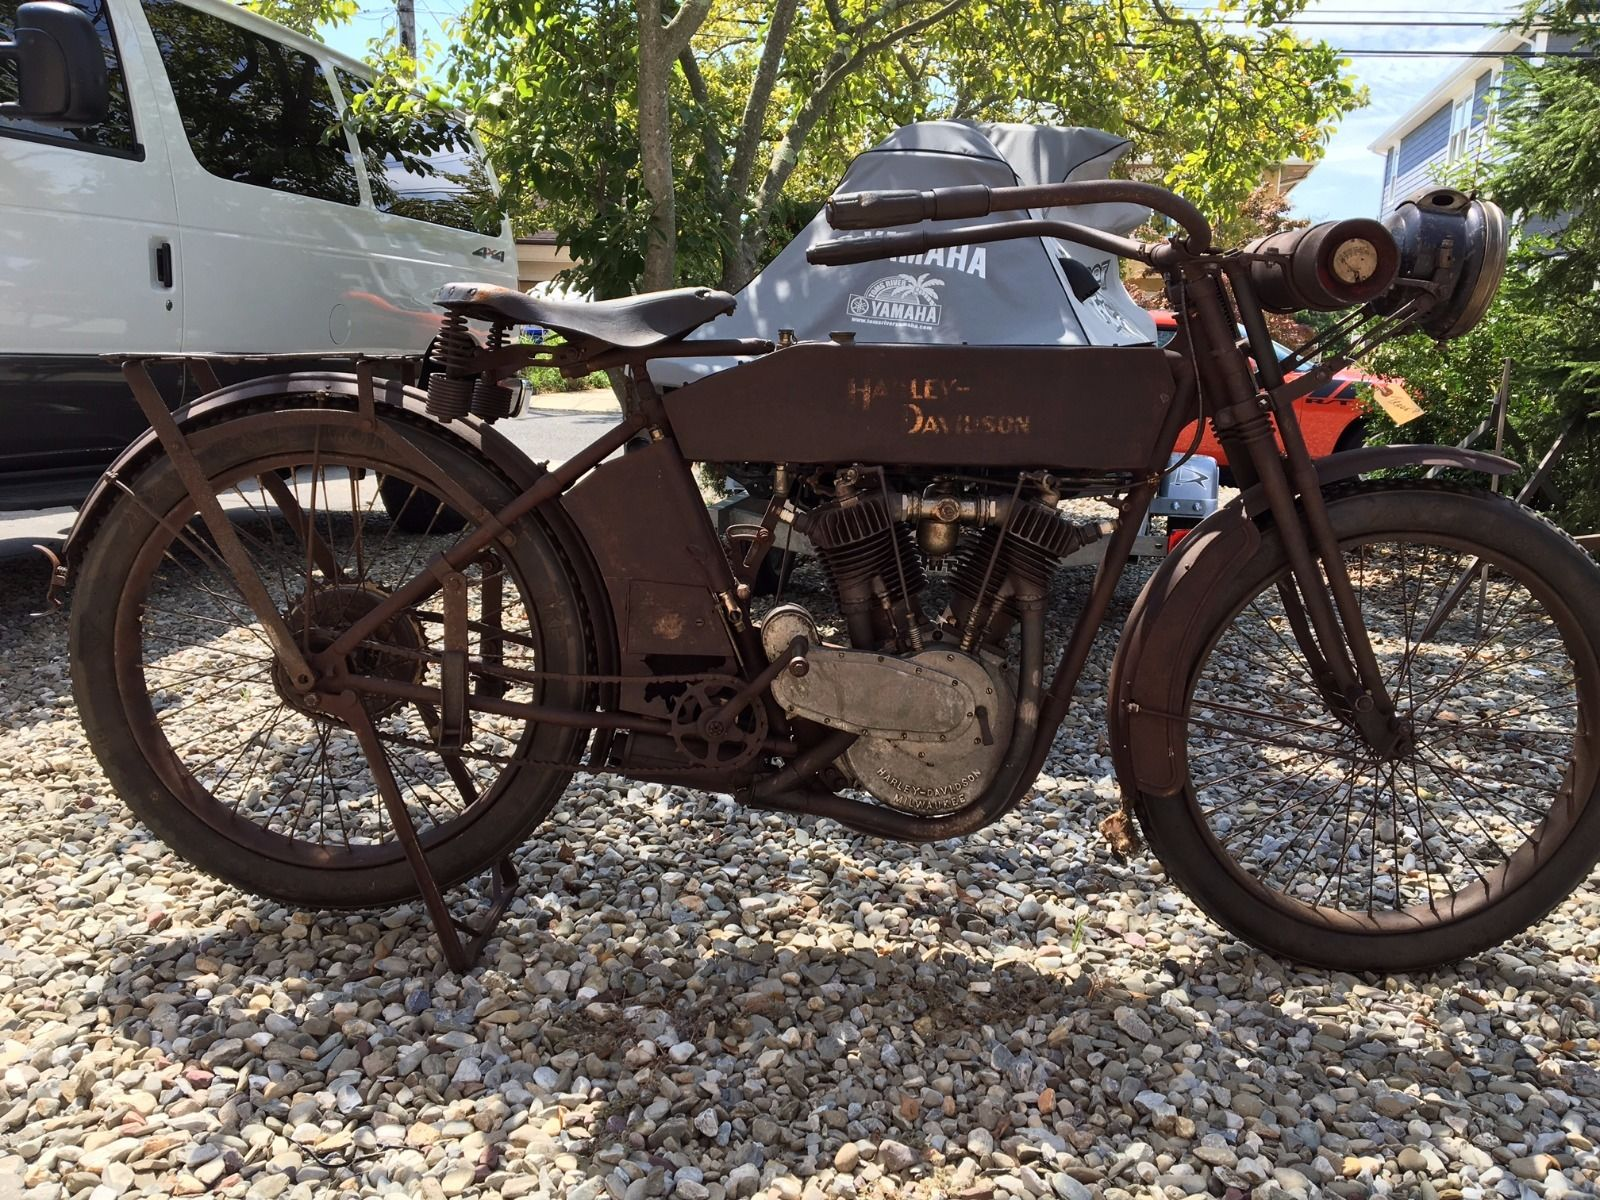 1913 Harley Davidson V Twin With The 811cc Engine And Fully Floating Seat Up For